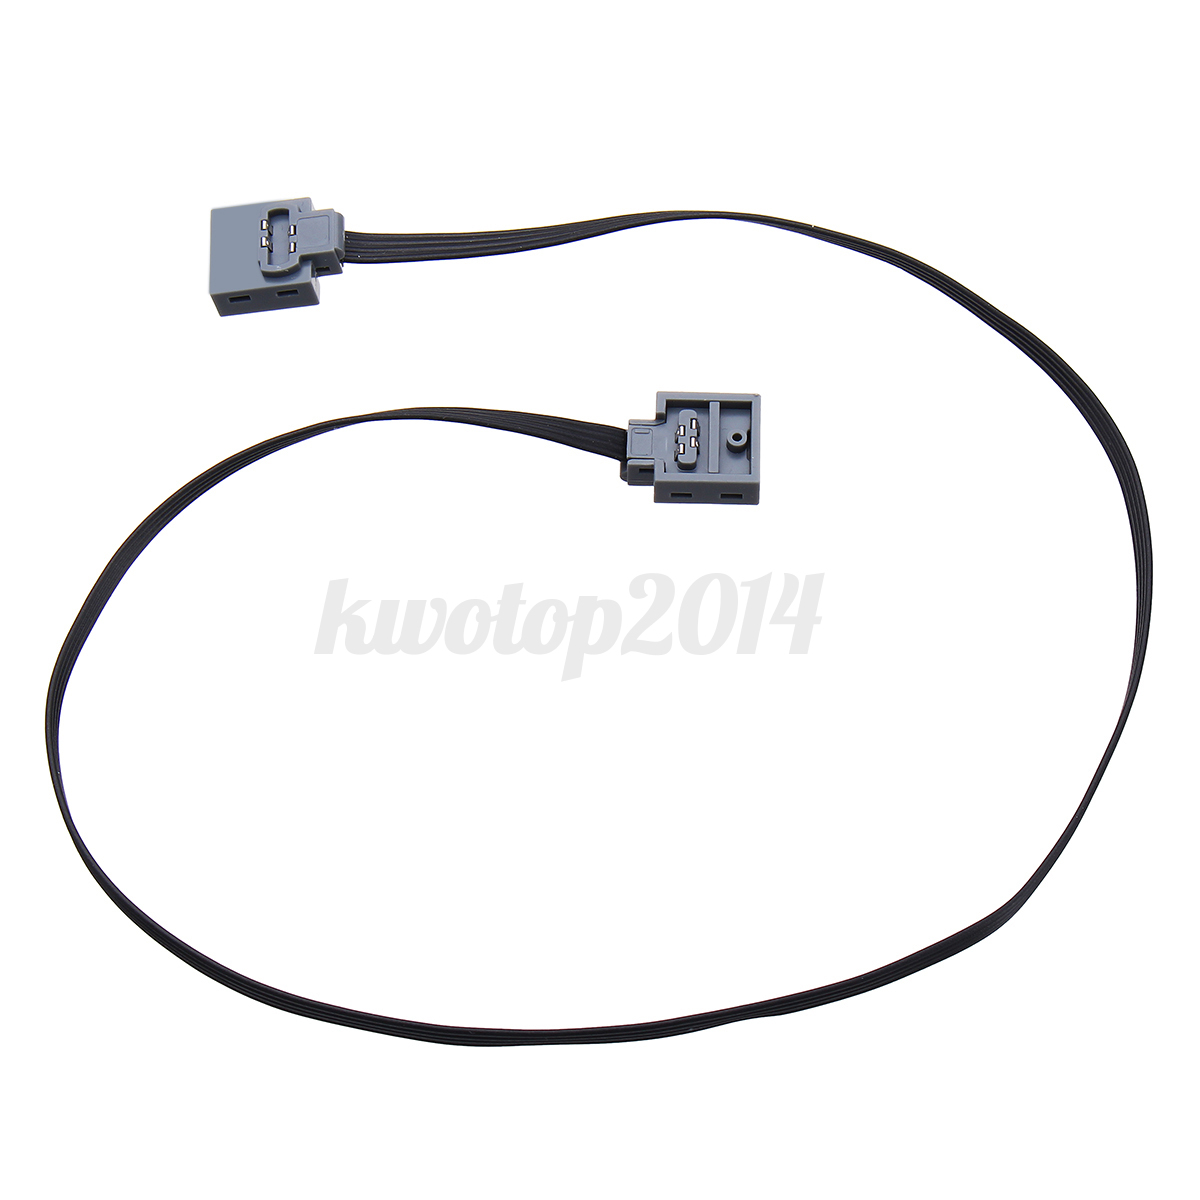 Led Light Link Line M Motor Extension Cord